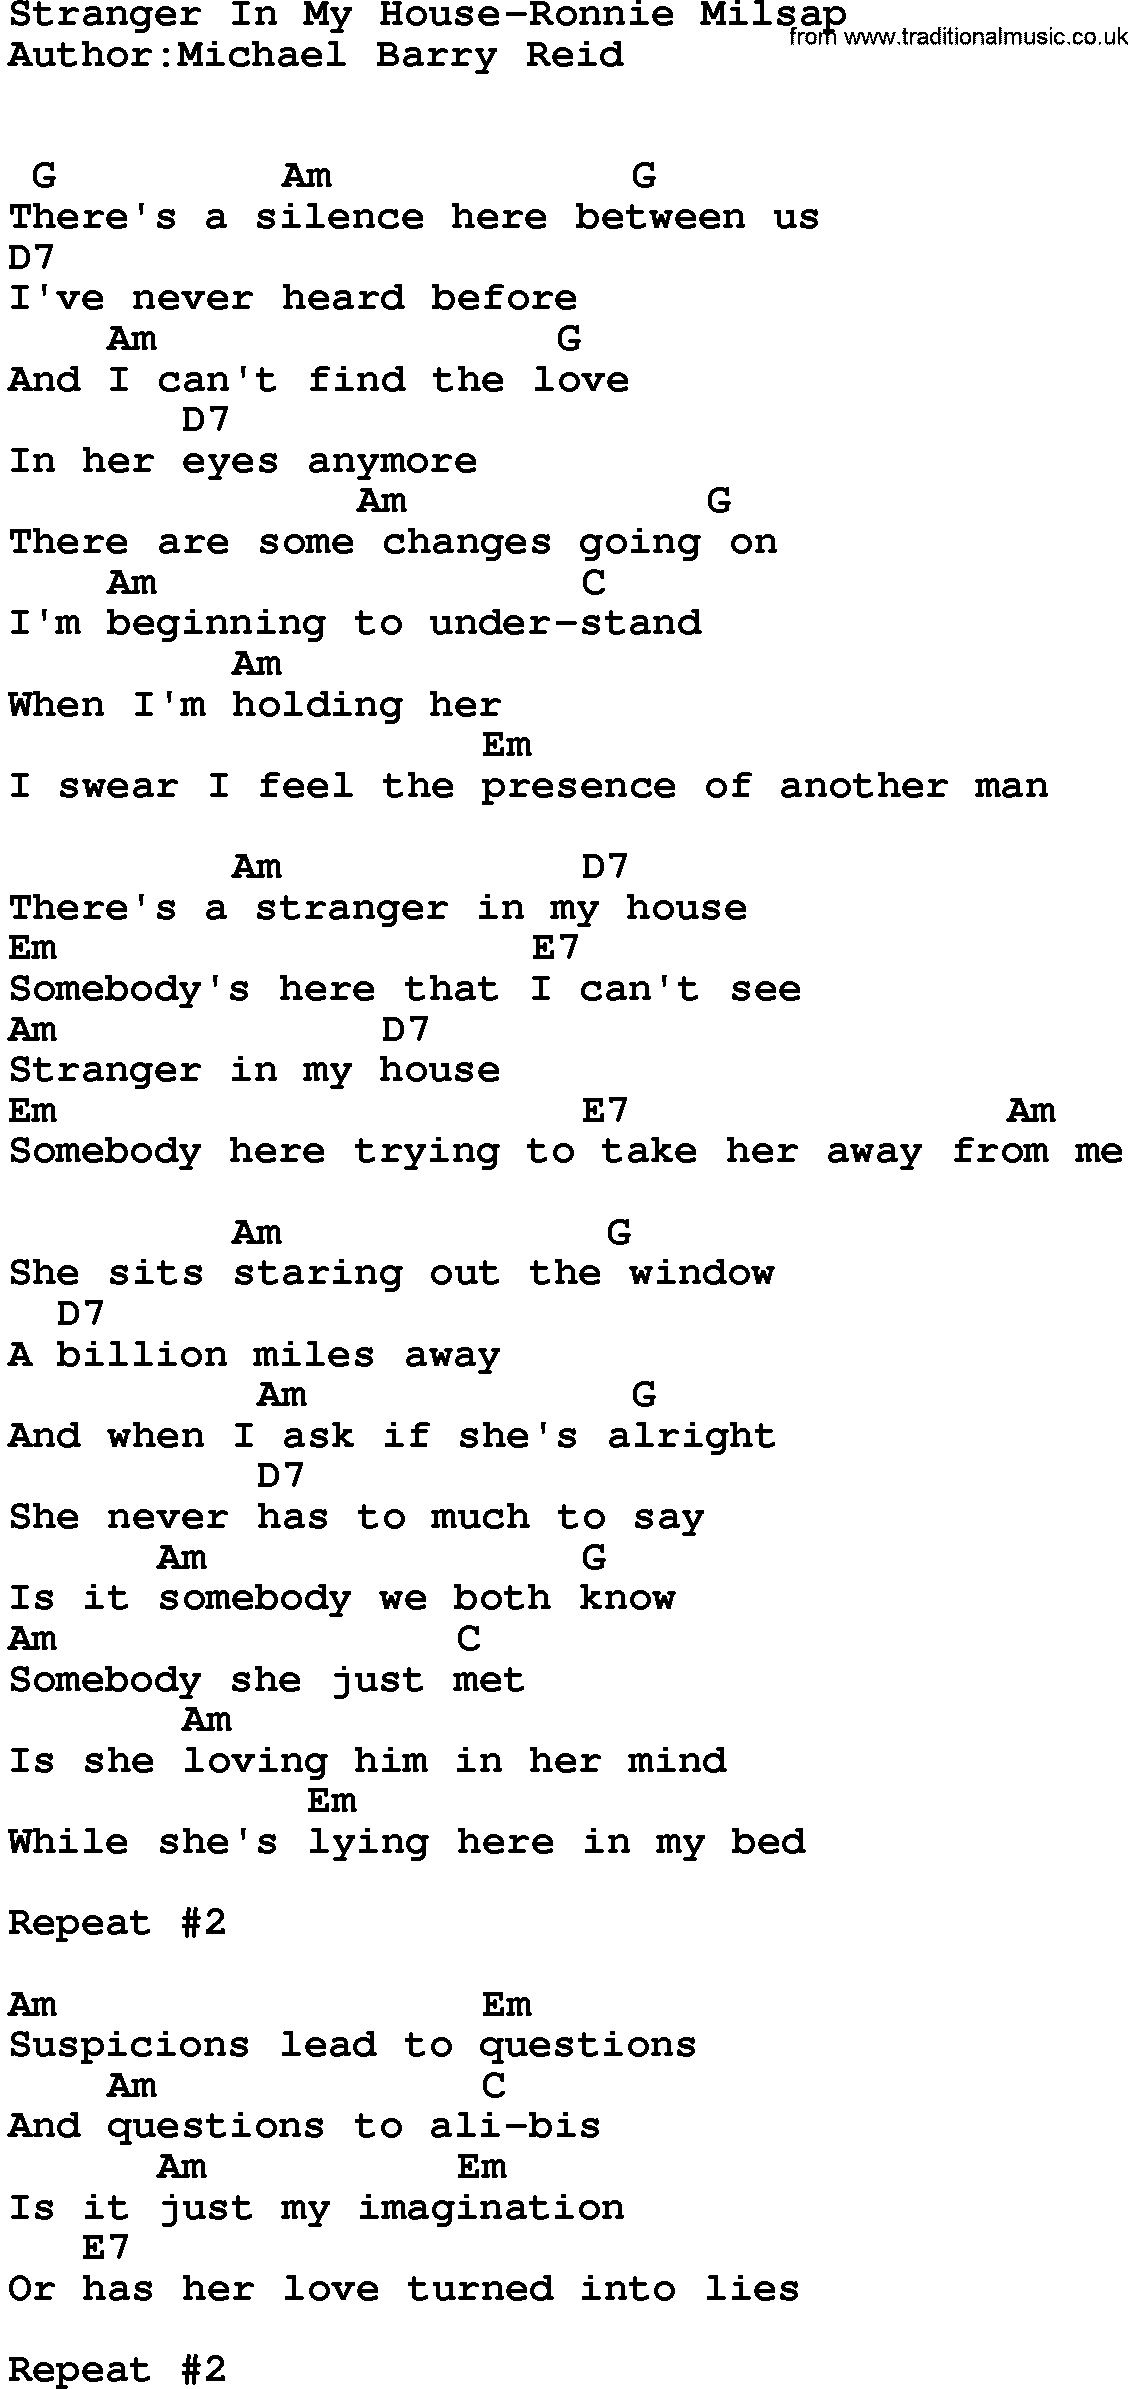 Country music stranger in my house ronnie milsap lyrics for My house house music